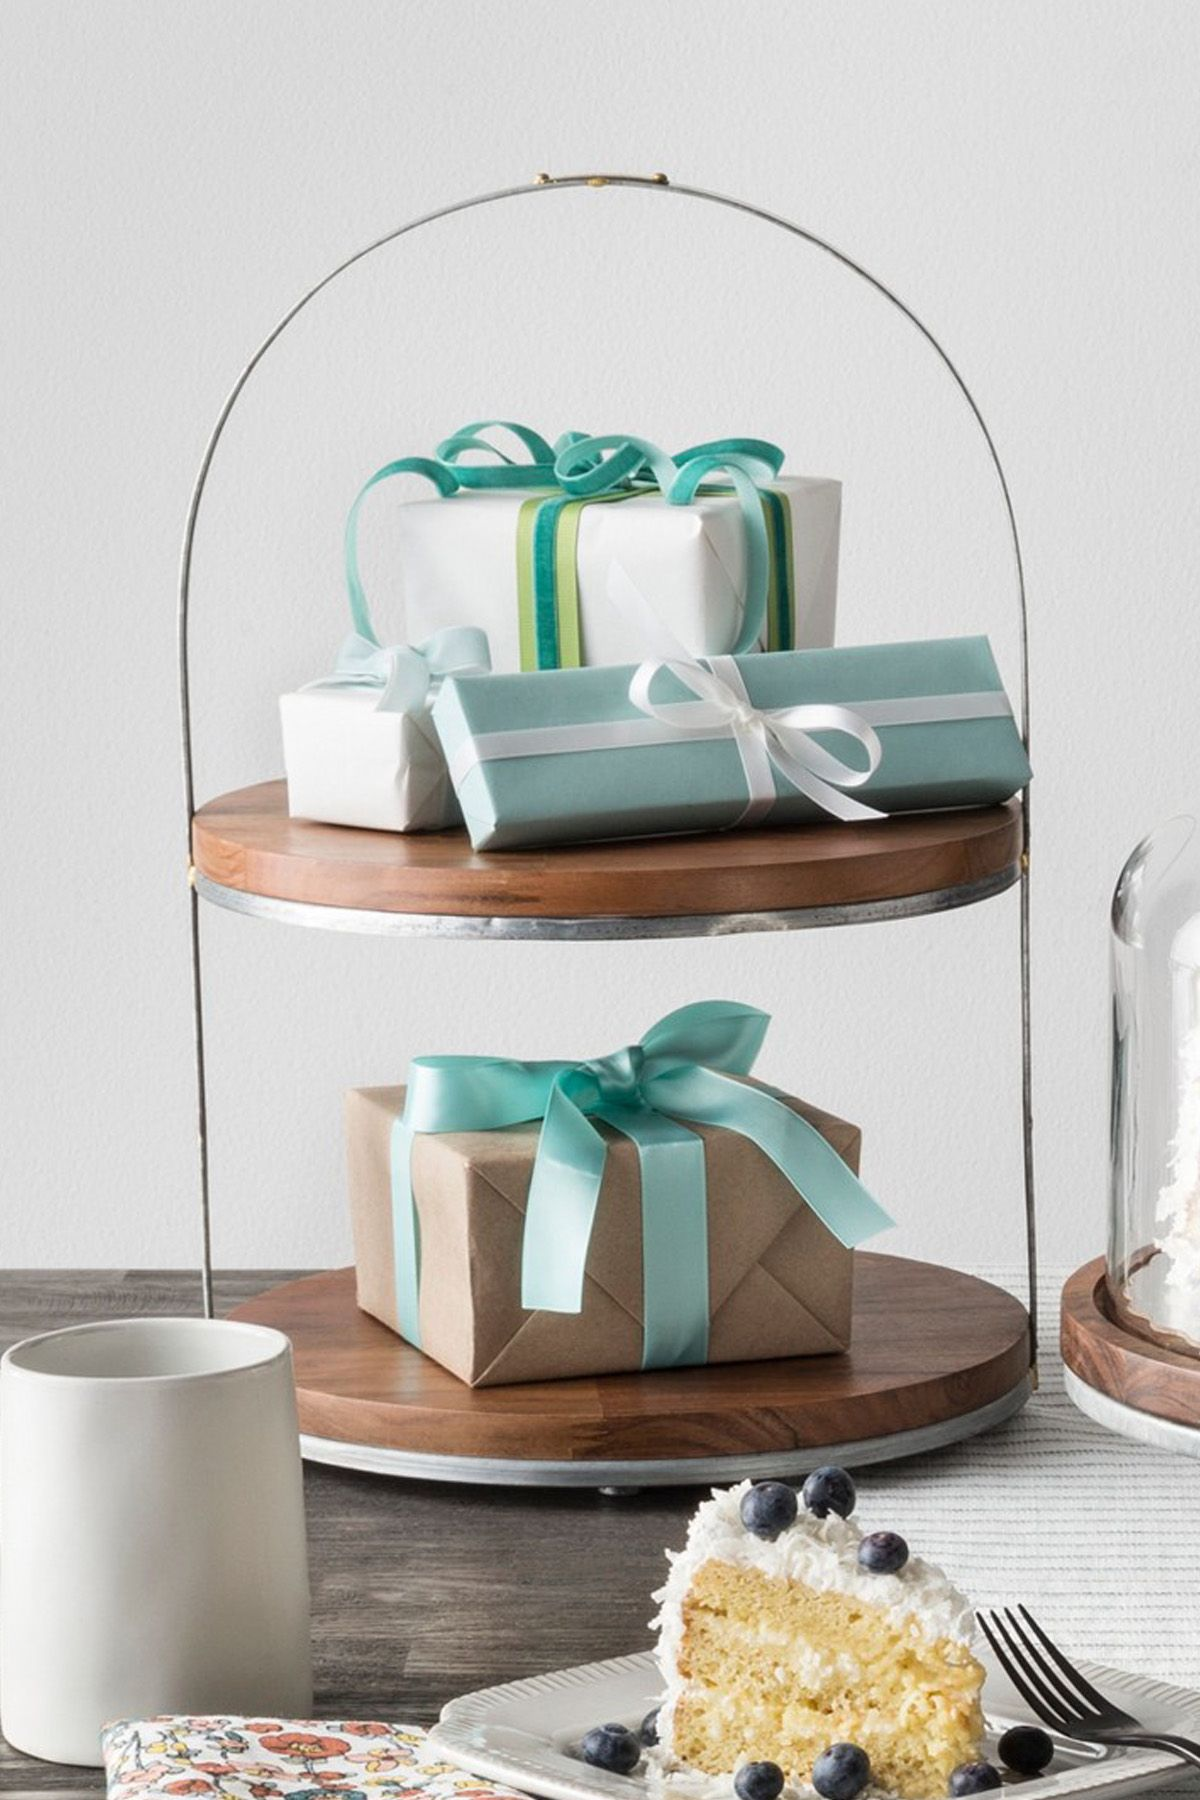 Joanna Gaines Target collection